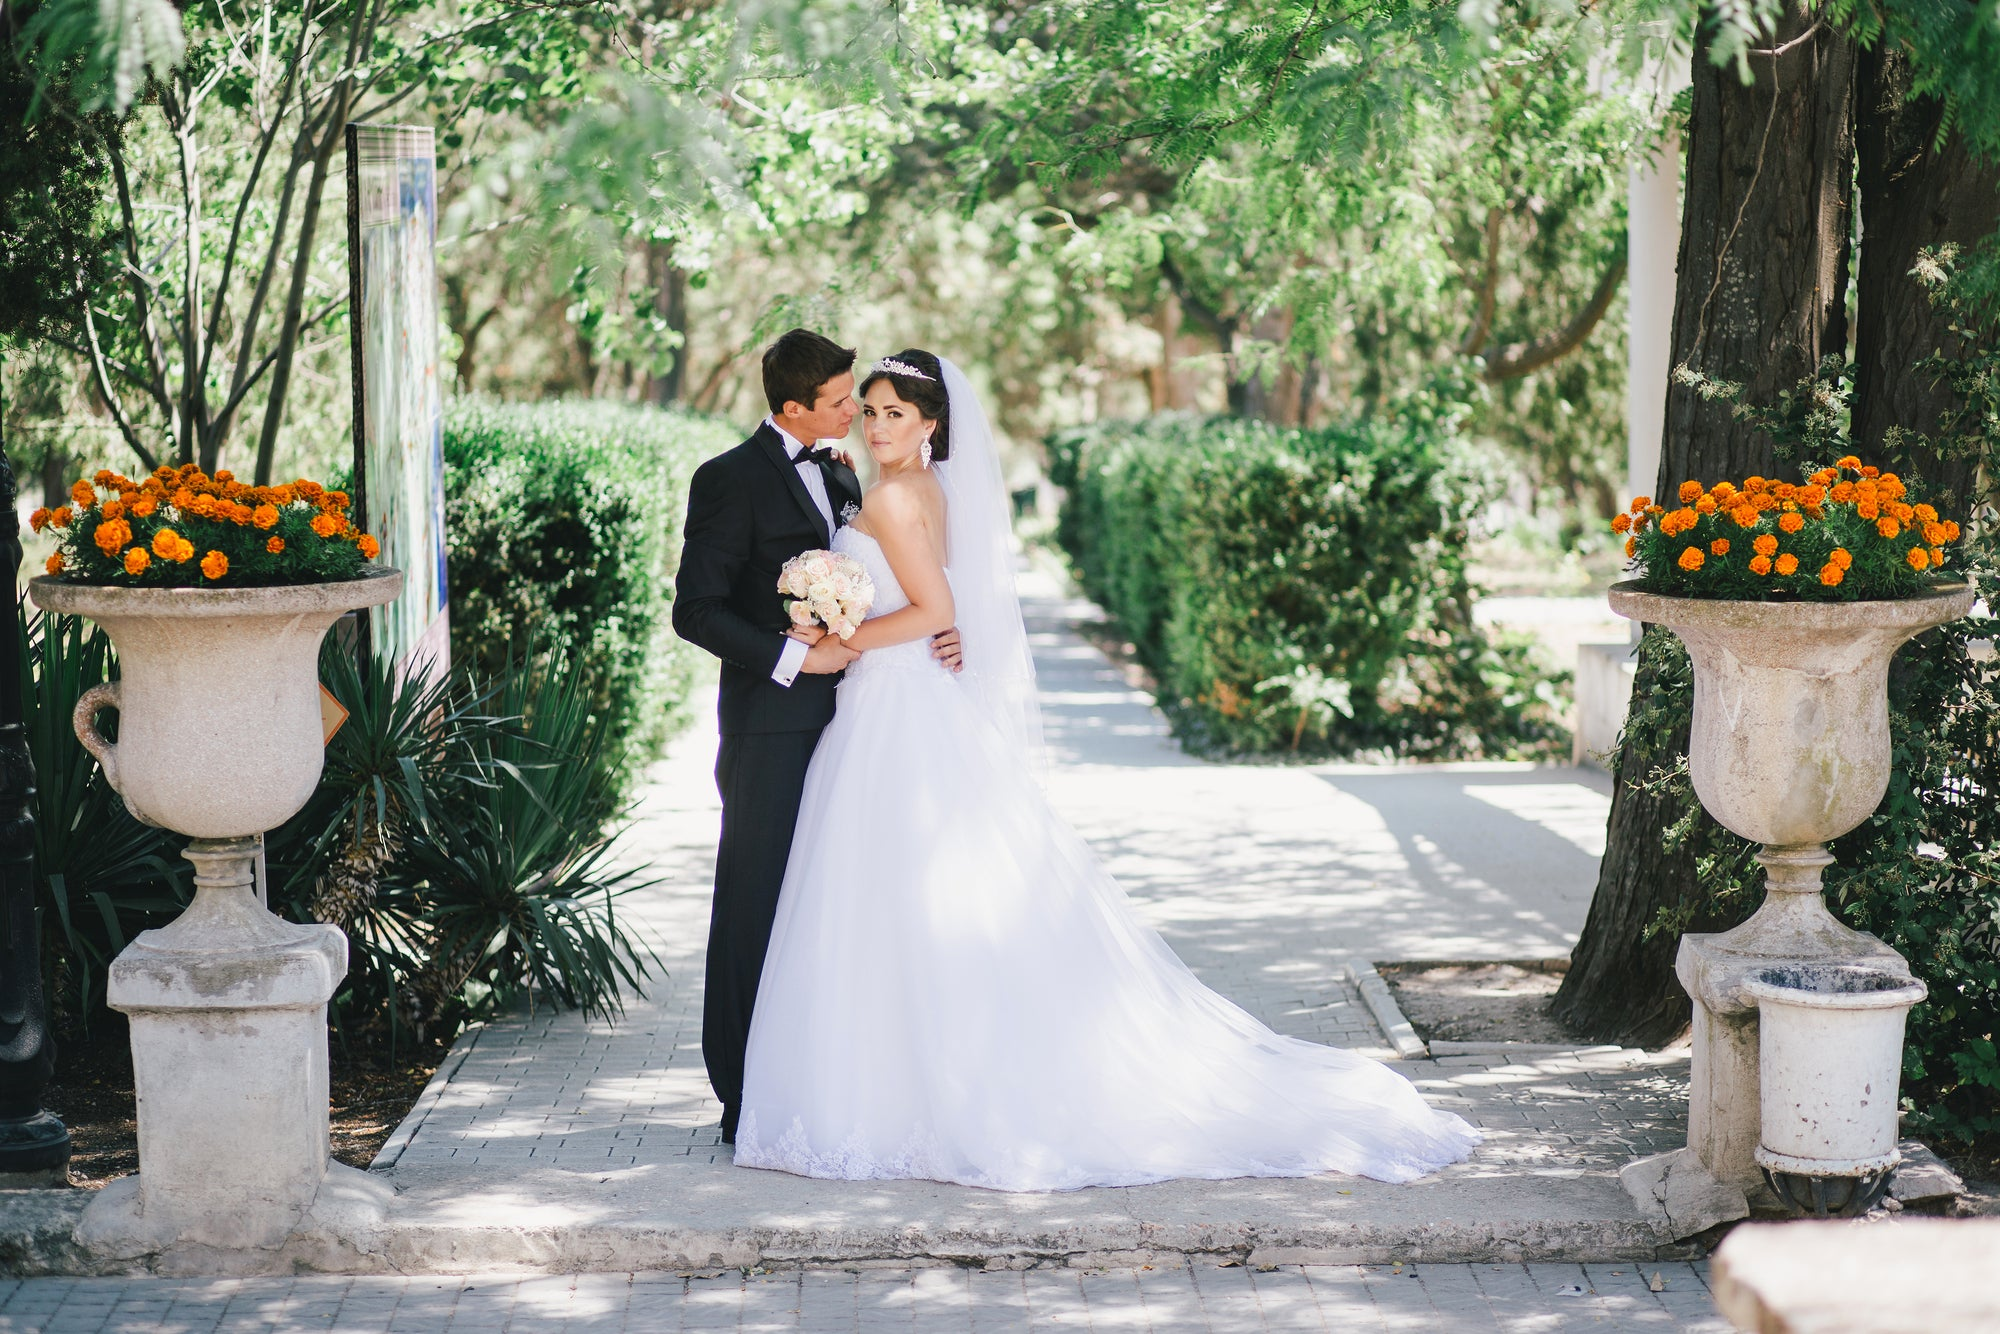 7 Ways Brides and Grooms Integrate Sustainability Into Their Weddings